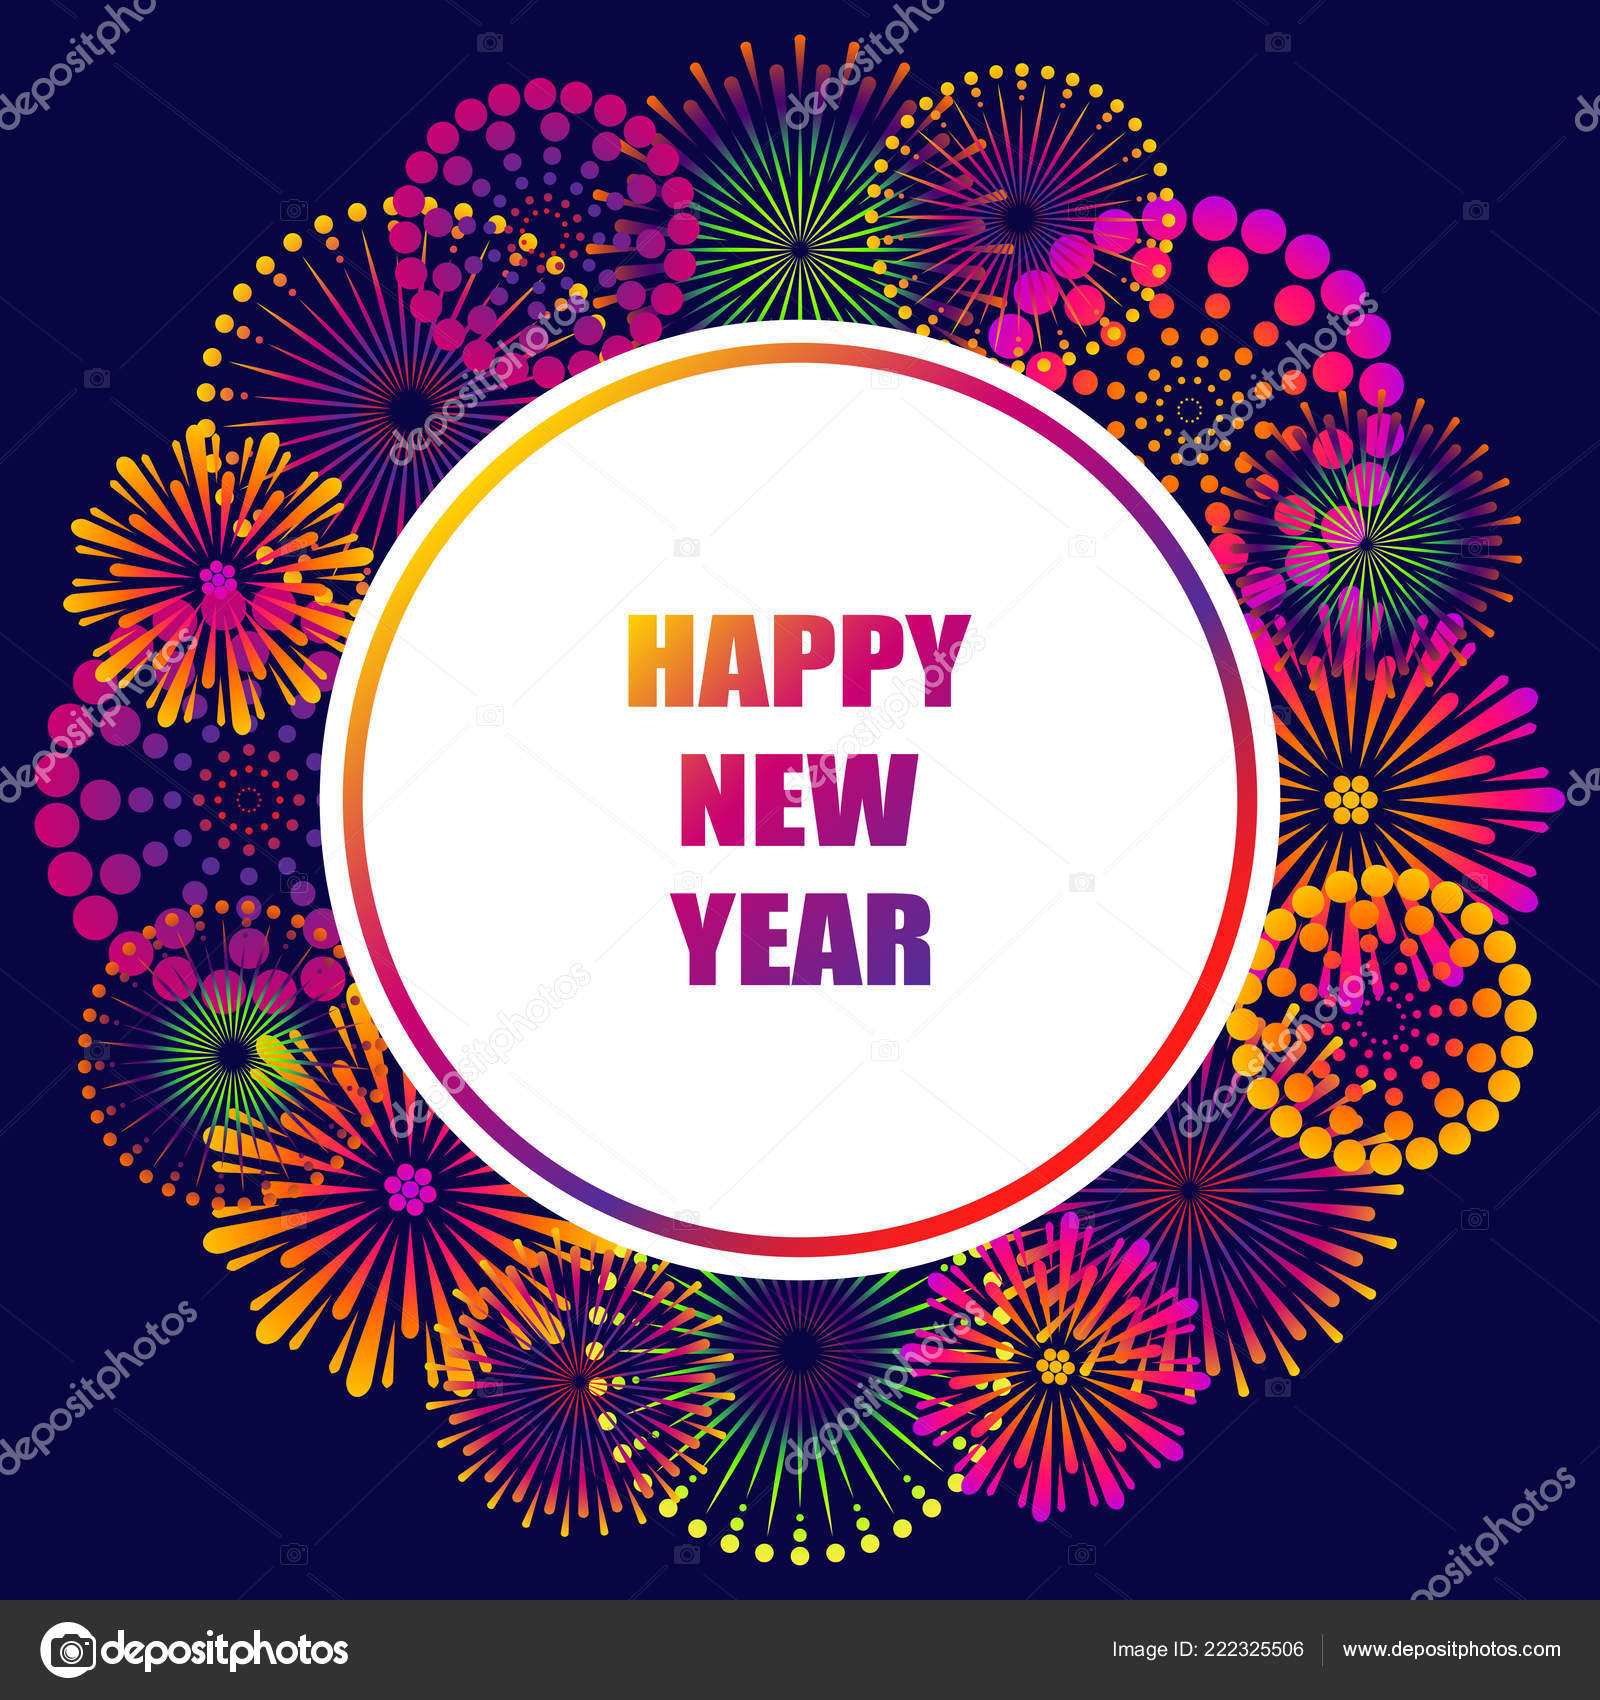 happy new year greeting card festive background abstract fireworks night stock vector